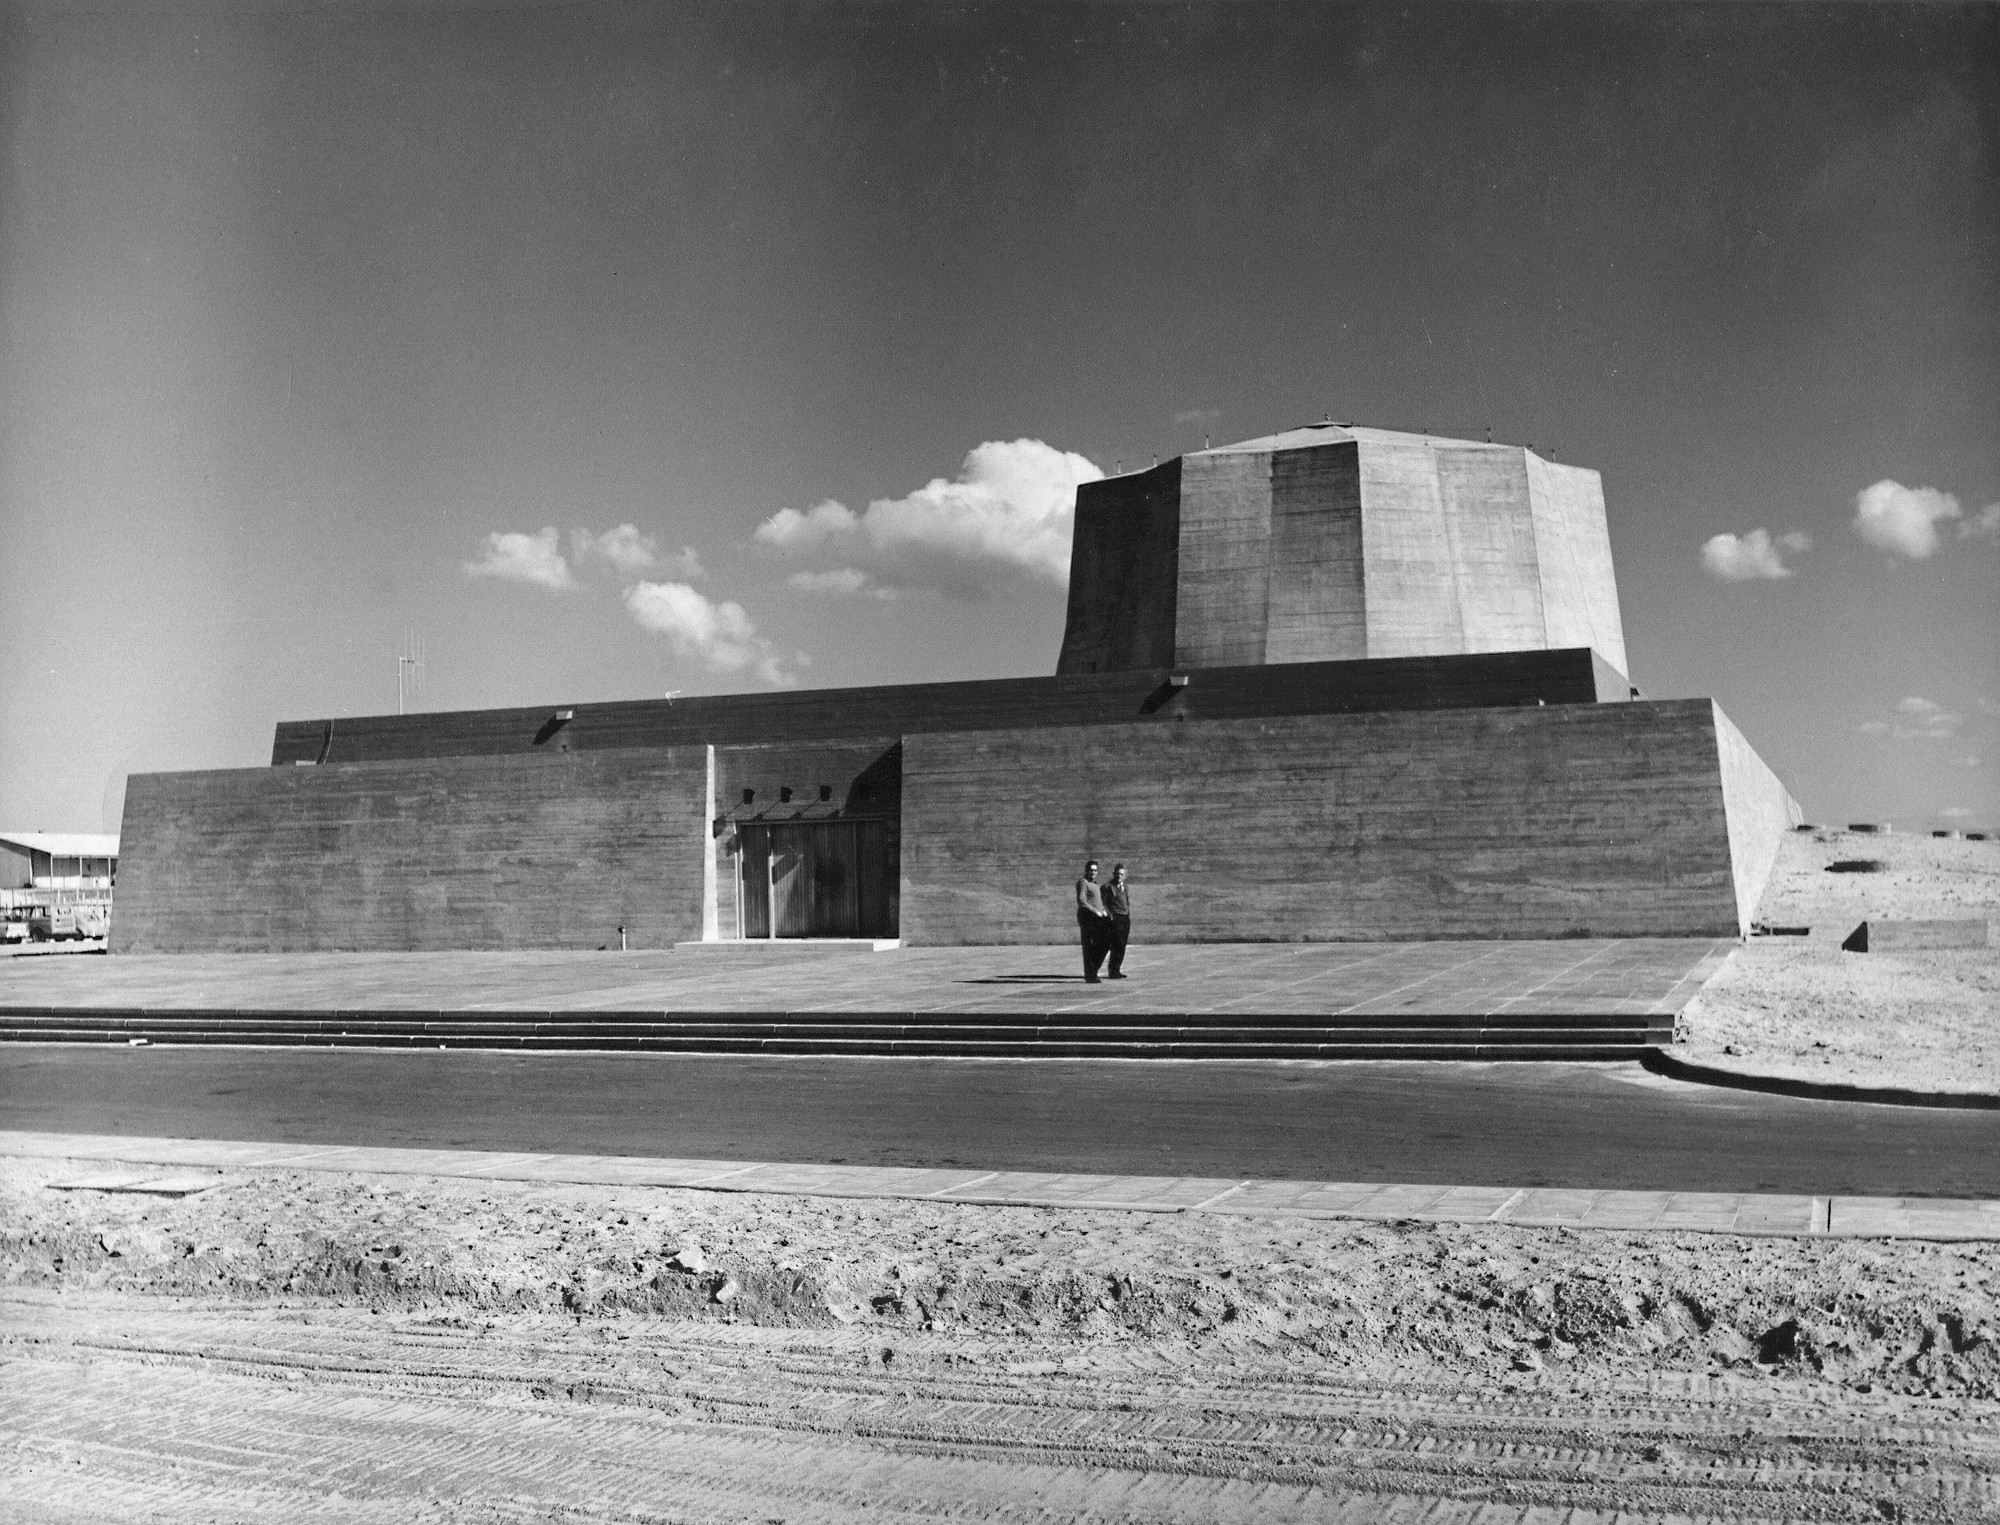 AD Classics: Soreq Nuclear Research Center / Philip Johnson ,  Philip Johnson and Gideon Ziv, Sorek Nuclear Research Center, Israel, 1956-9 (from: Zvi Efrat, The Israeli Project: Building and Architecture 1948-1973)